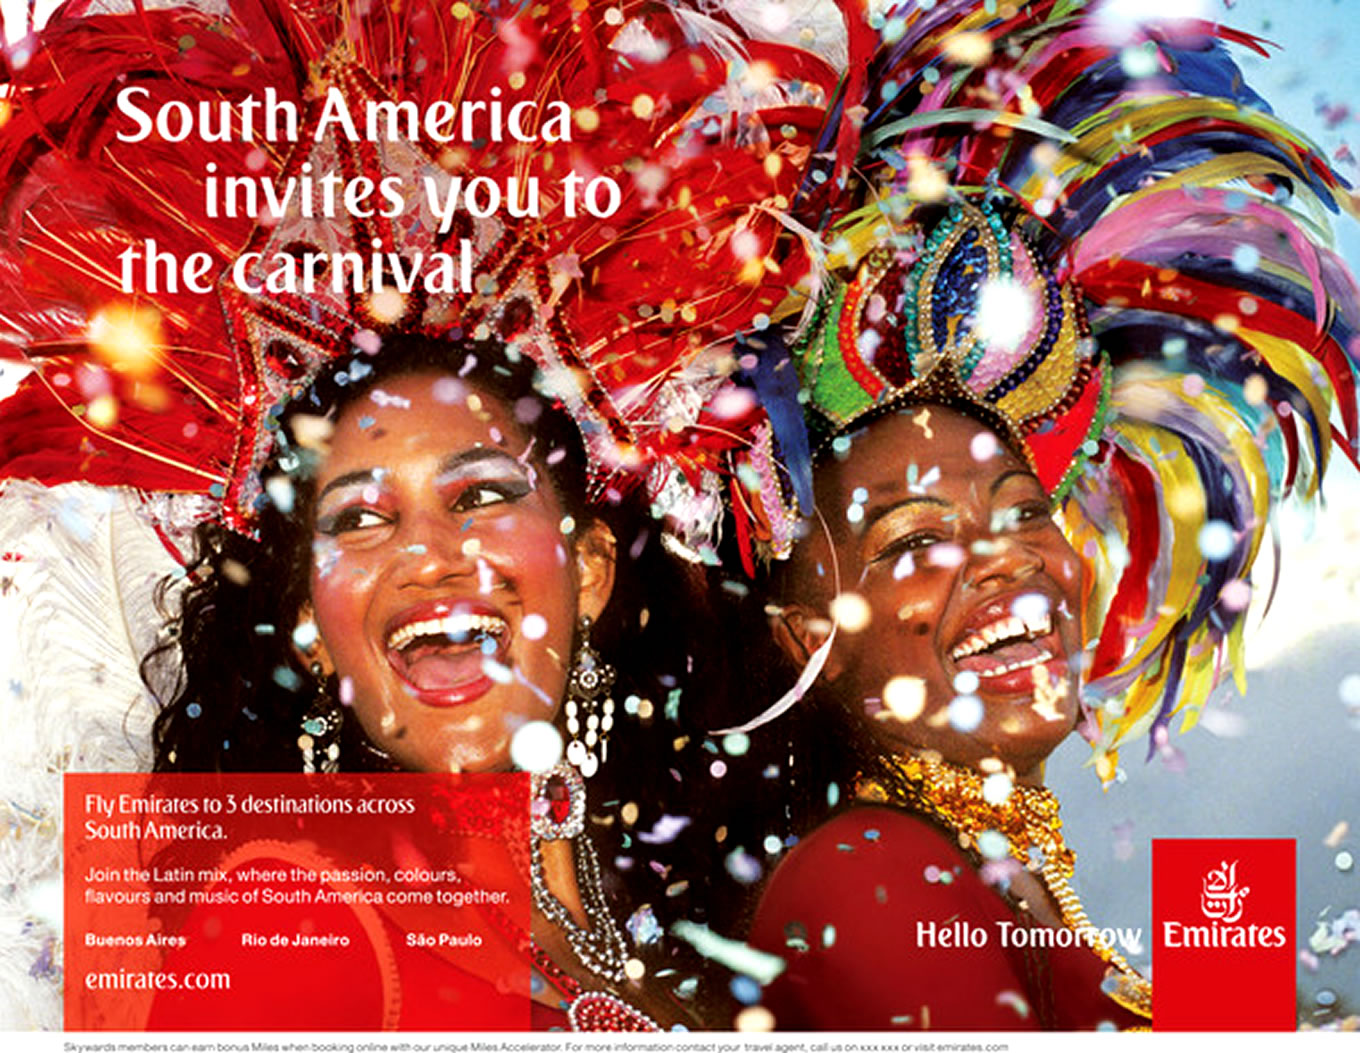 Destination South America, Hello Tomorrow Marketing Campaign by Emirates Airlines